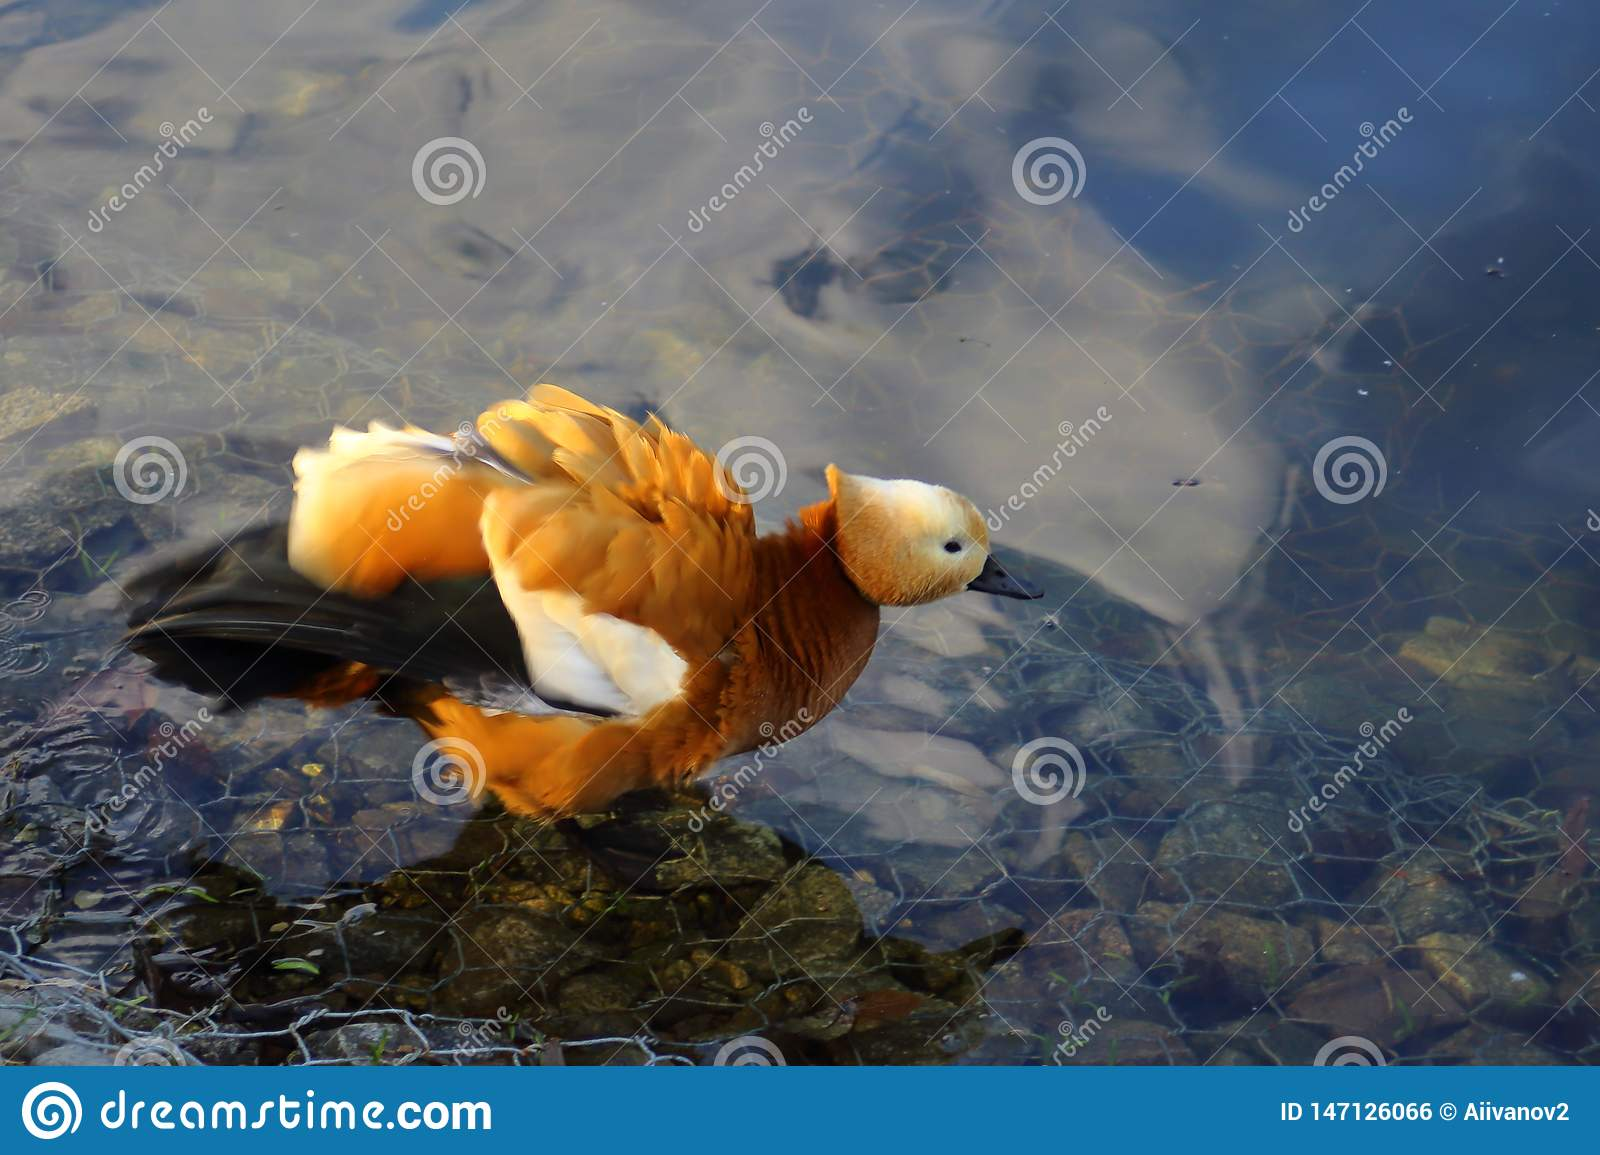 The Ruddy shelduck on the pond